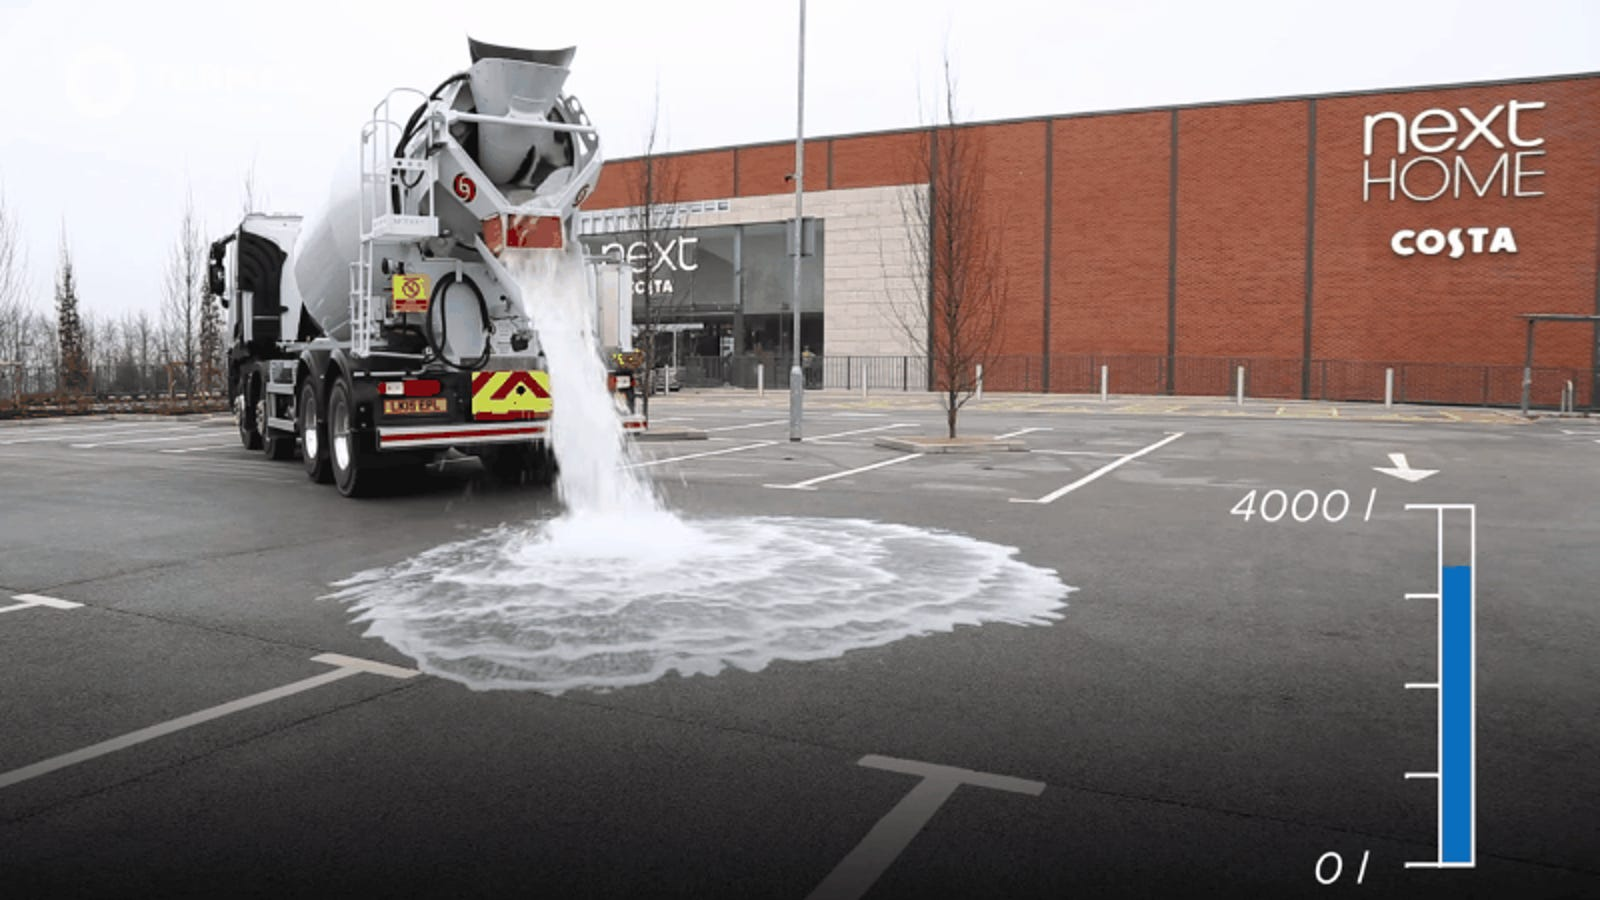 Watch This Magical Concrete Slurp Up 1,000 Gallons of Water In a Minute